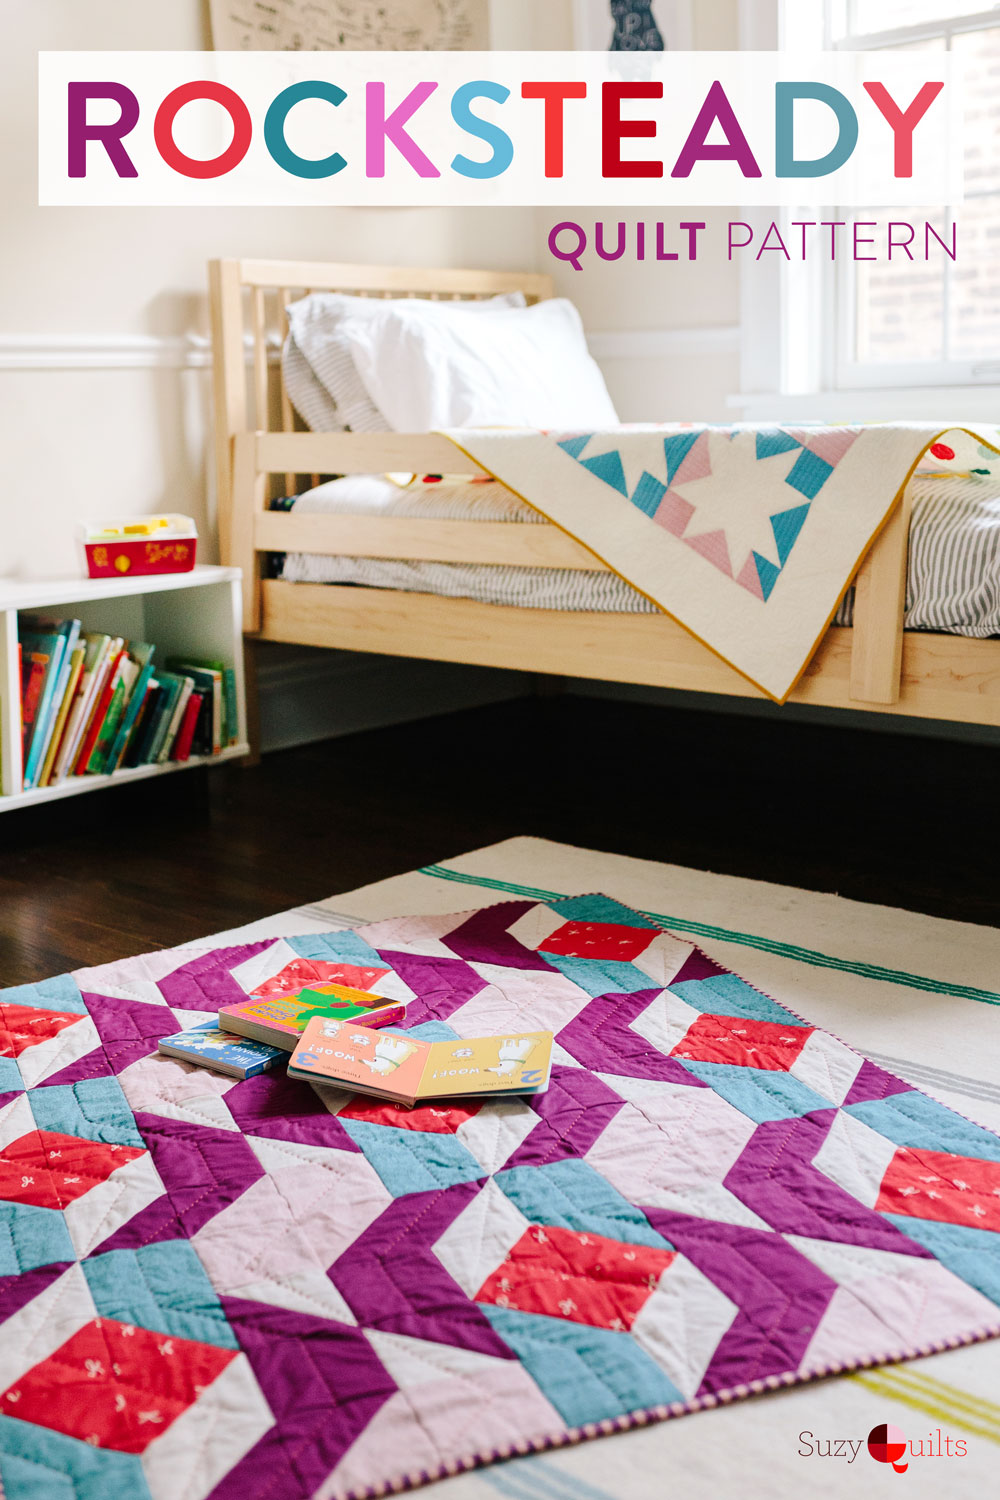 Rocksteady-Modern-Quilt-Pattern